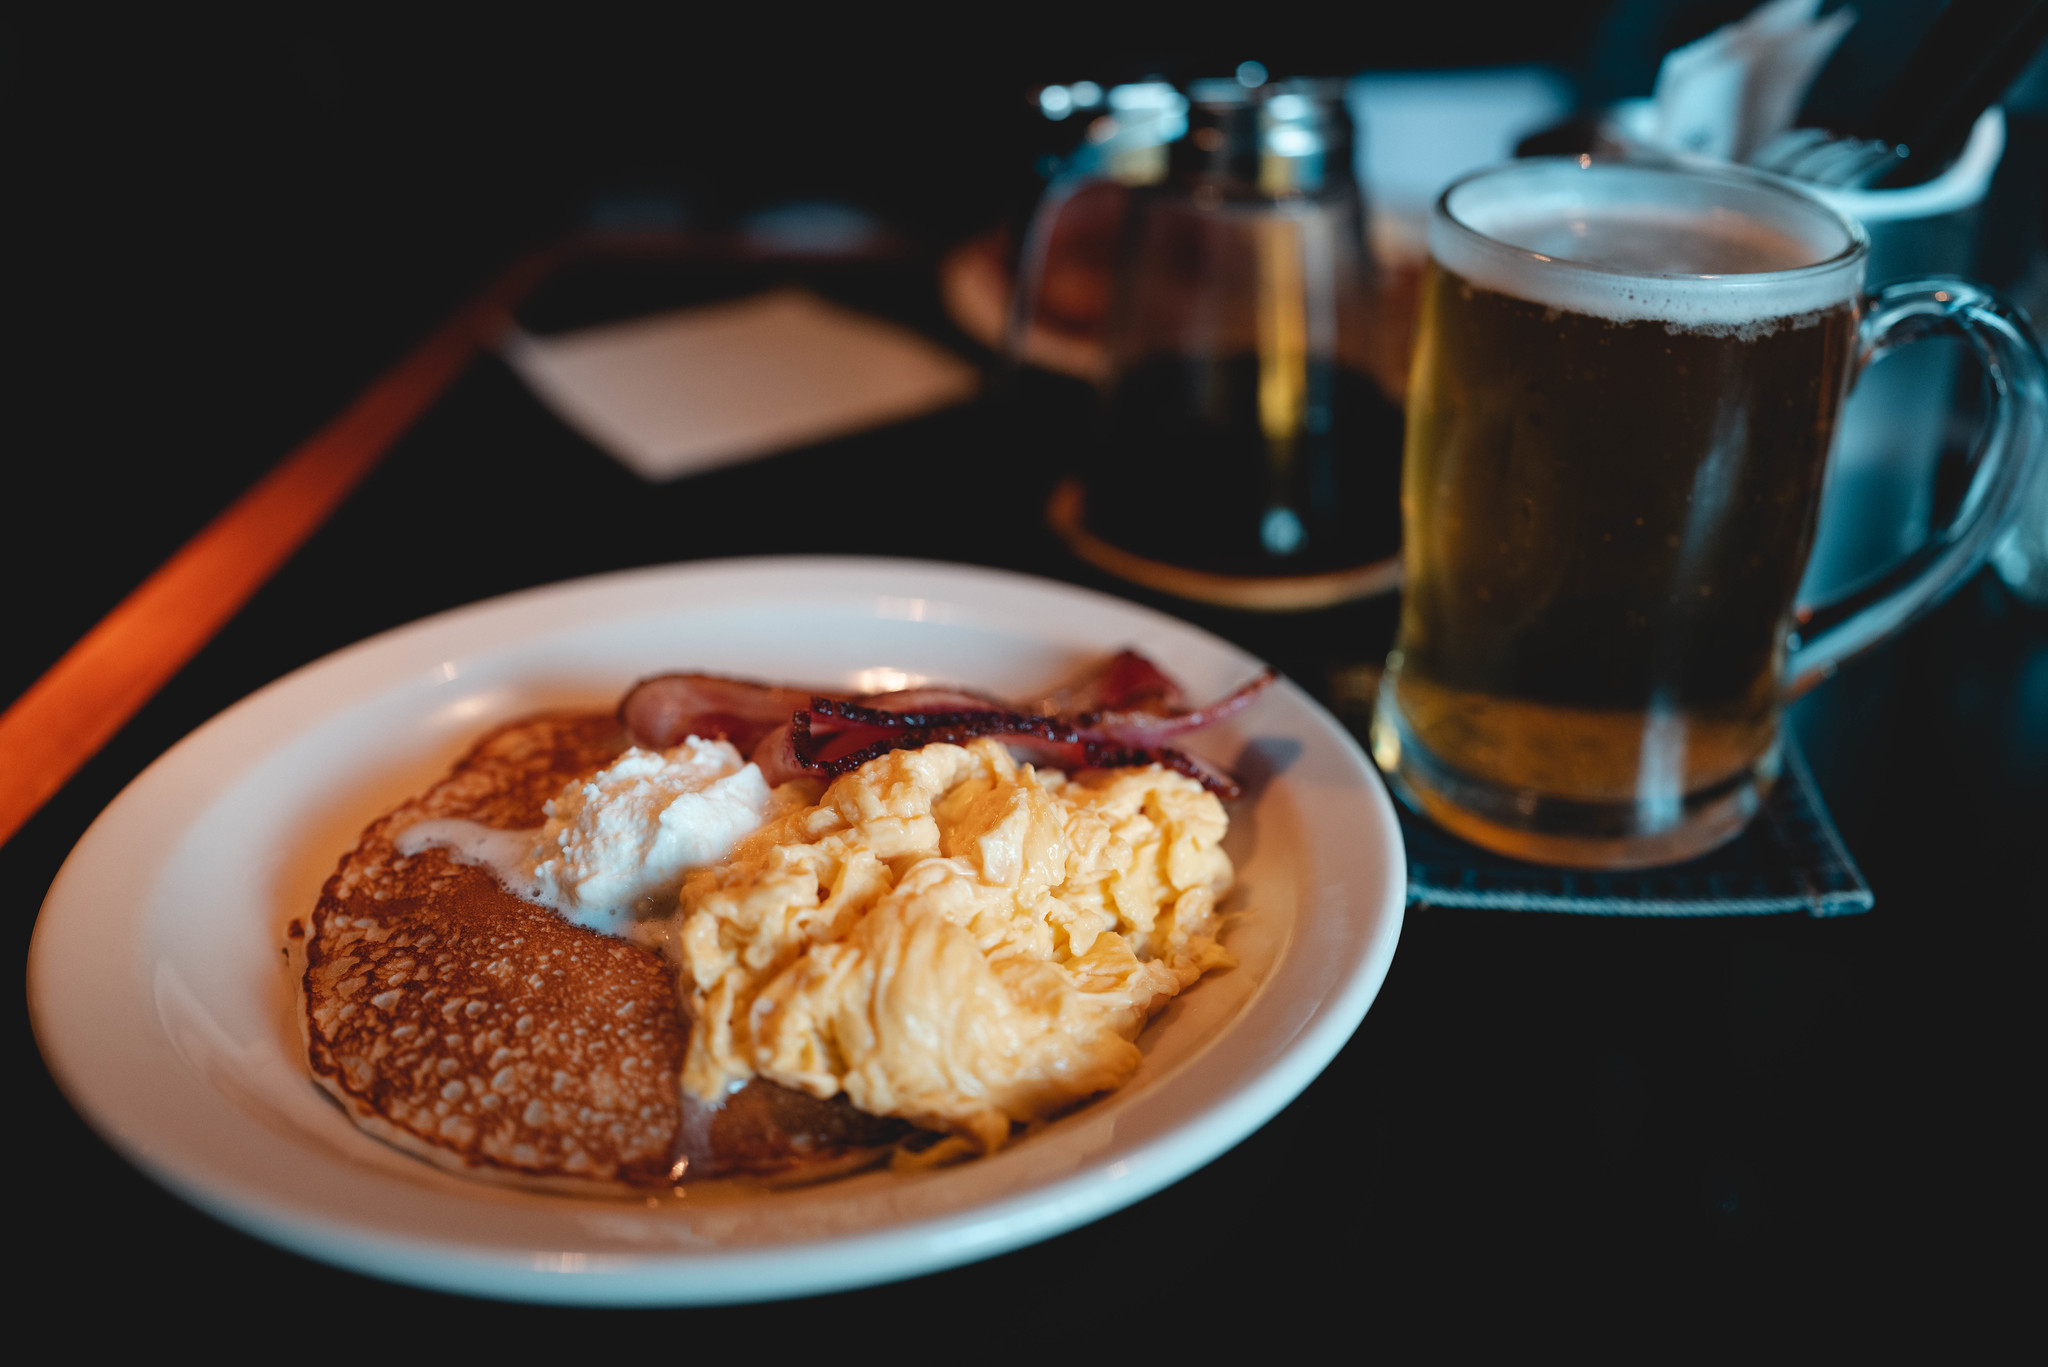 Pancakes and beer